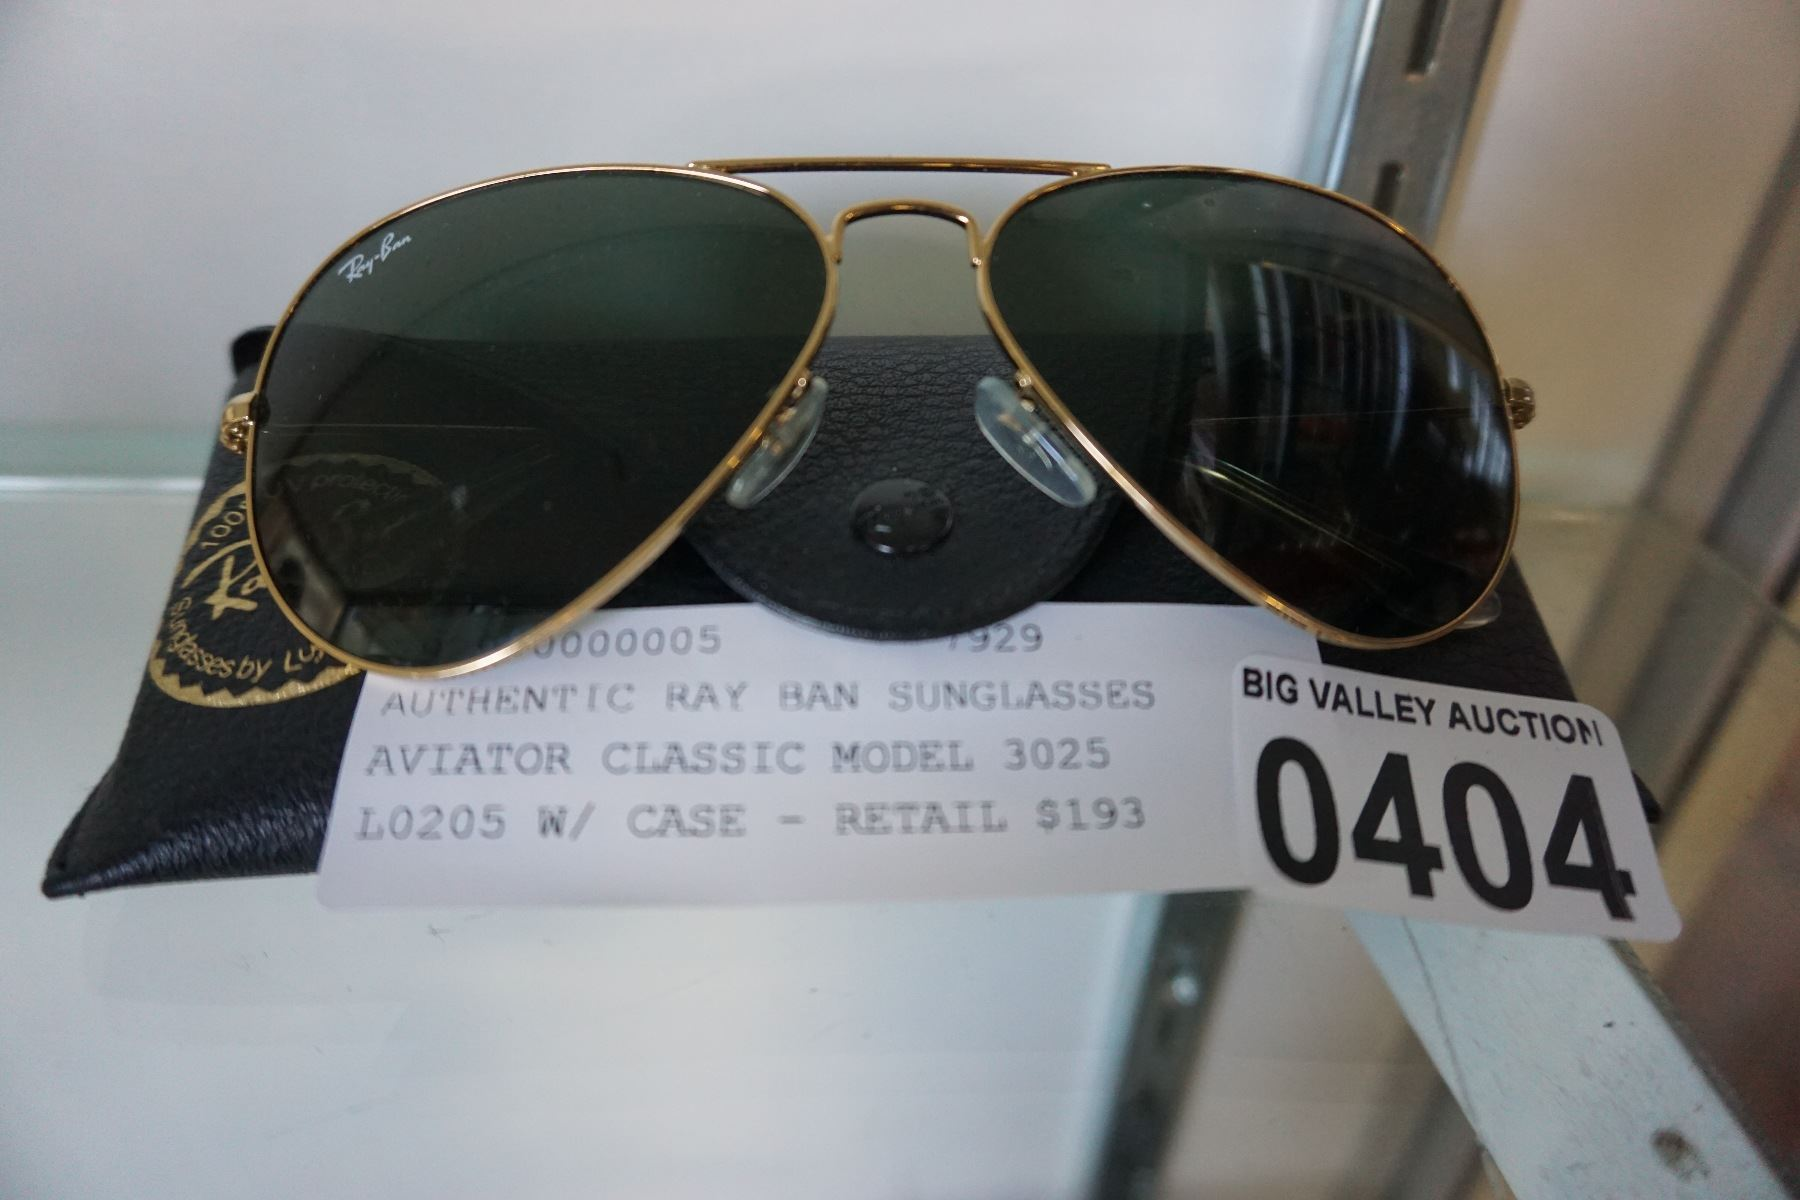 e64637b70 ... Image 2 : AUTHENTIC RAY BAN SUNGLASSES AVIATOR CLASSIC MODEL 3025 L0205  W/ CASE ...